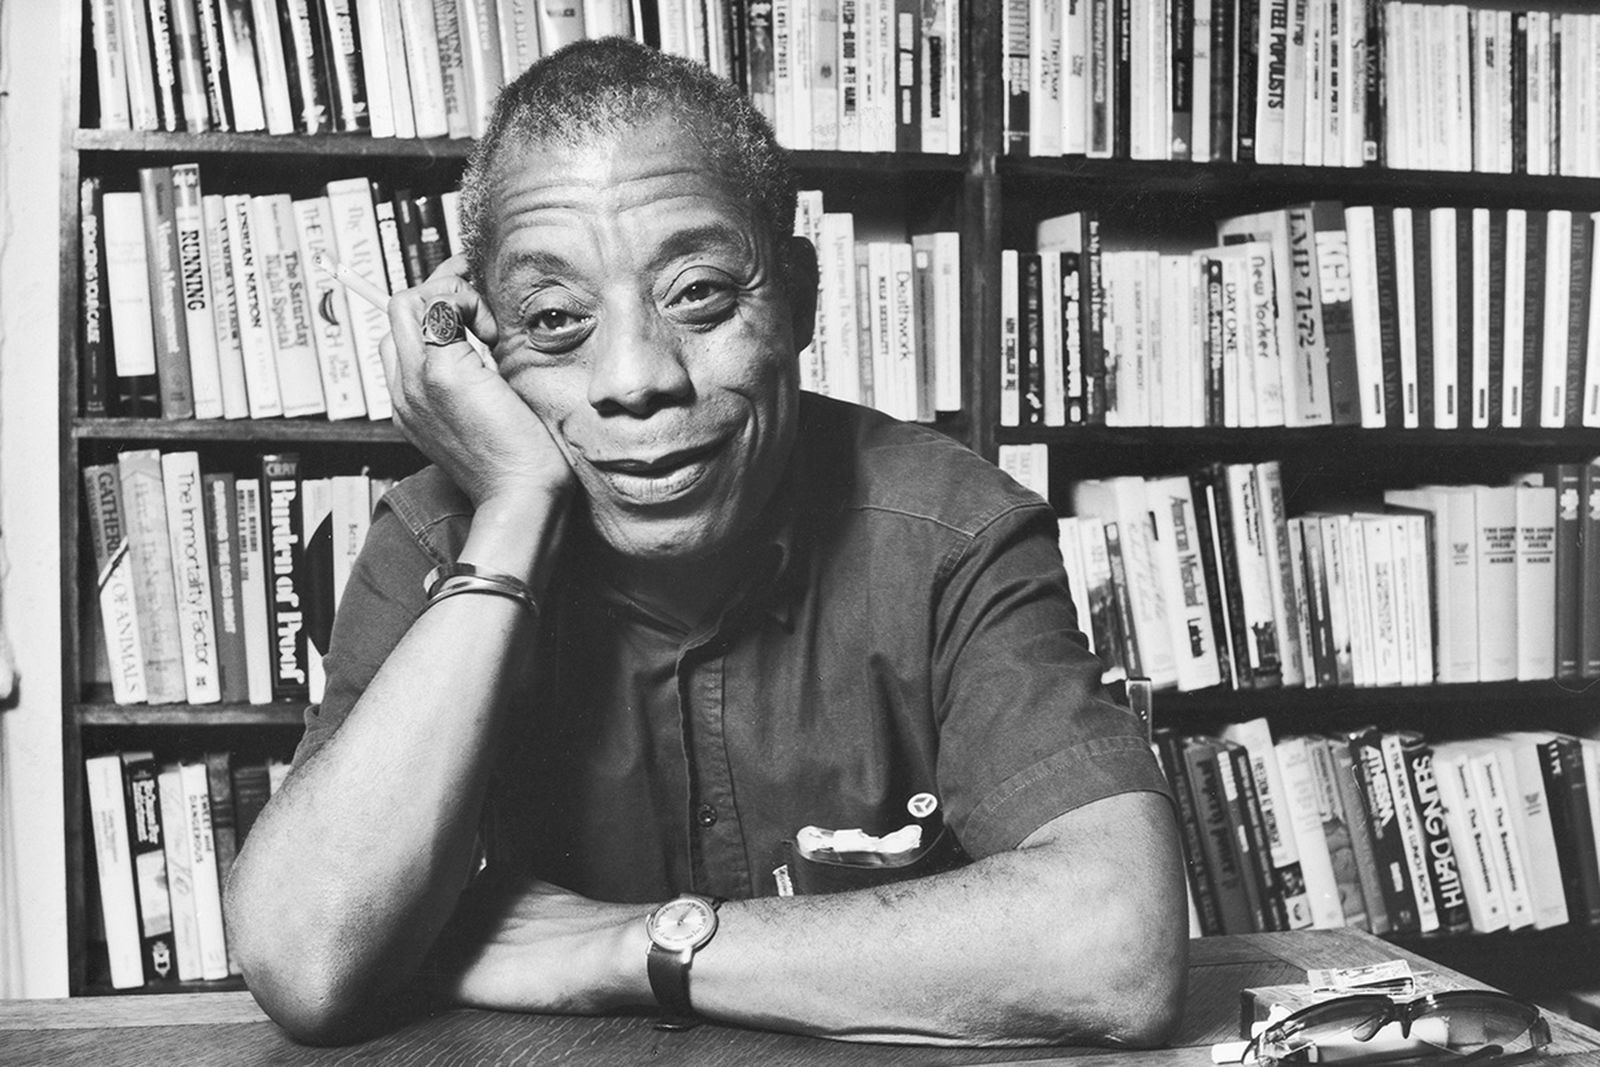 James Baldwin smiling in front of a book shelf